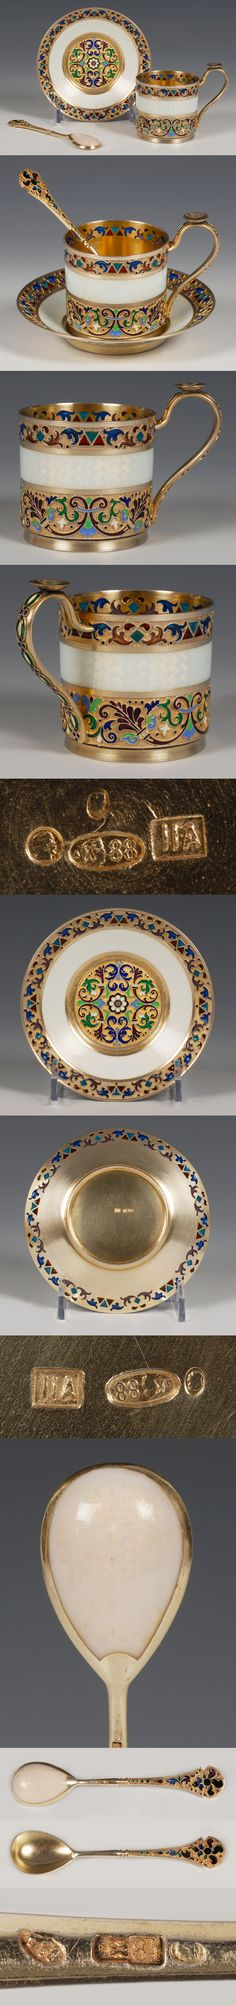 A Russian silver gilt, cloisonne and plique-a-jour enamel demi-tasse cup, saucer and spoon, 11 Artel, Moscow, circa 1908-1917. The cup, saucer and spoon decorated similarly with scrolling floral and foliate motifs in polychrome enamels, a similar plique-a-jour enamel band around the rim, the center with a band of translucent white enamel over engine turned ground.